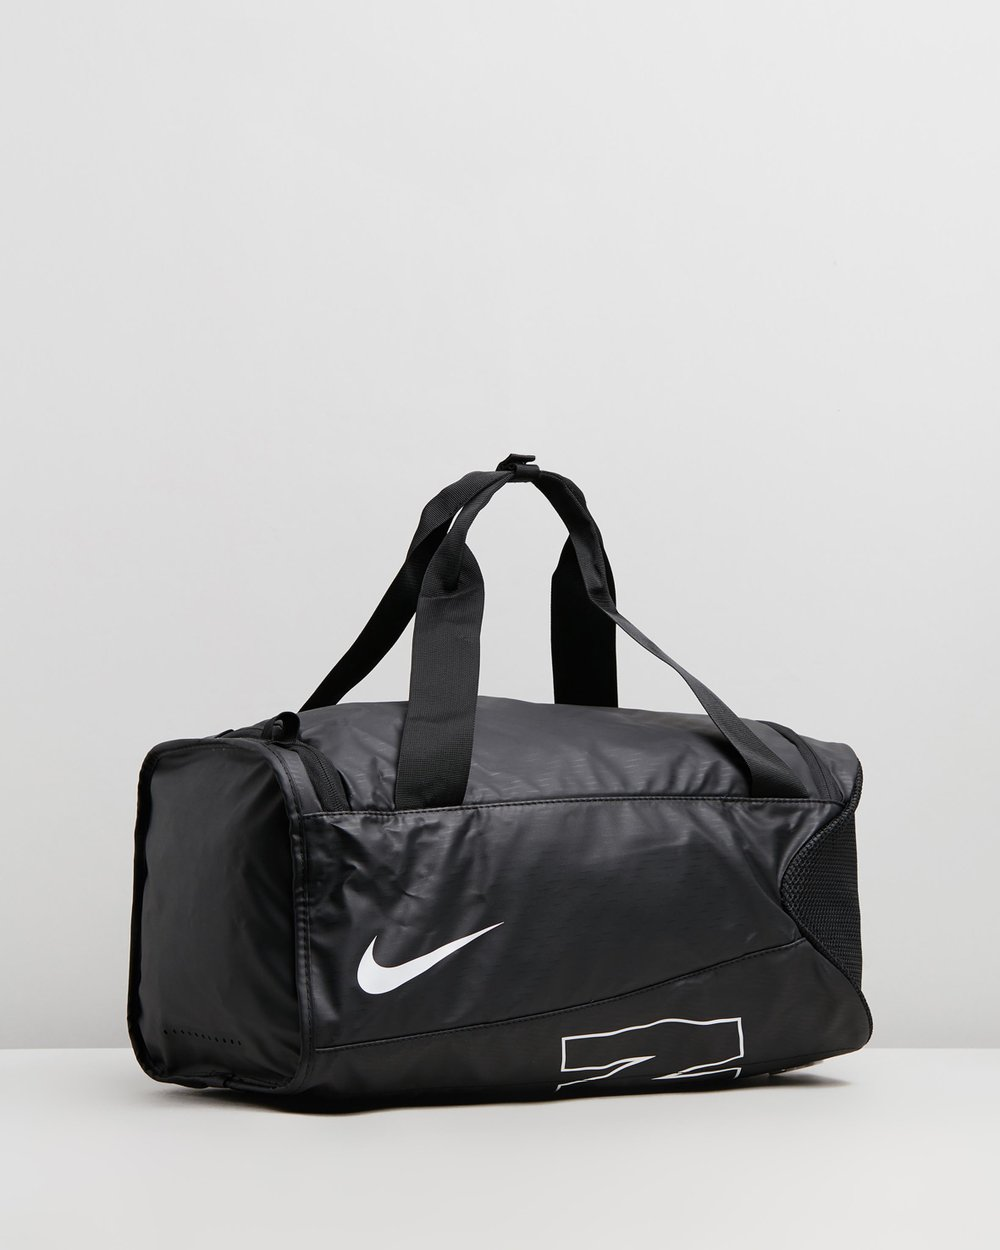 f500834c1 Alpha Adapt Cross-Body Training Duffle Bag - Unisex Teen by Nike Online |  THE ICONIC | Australia